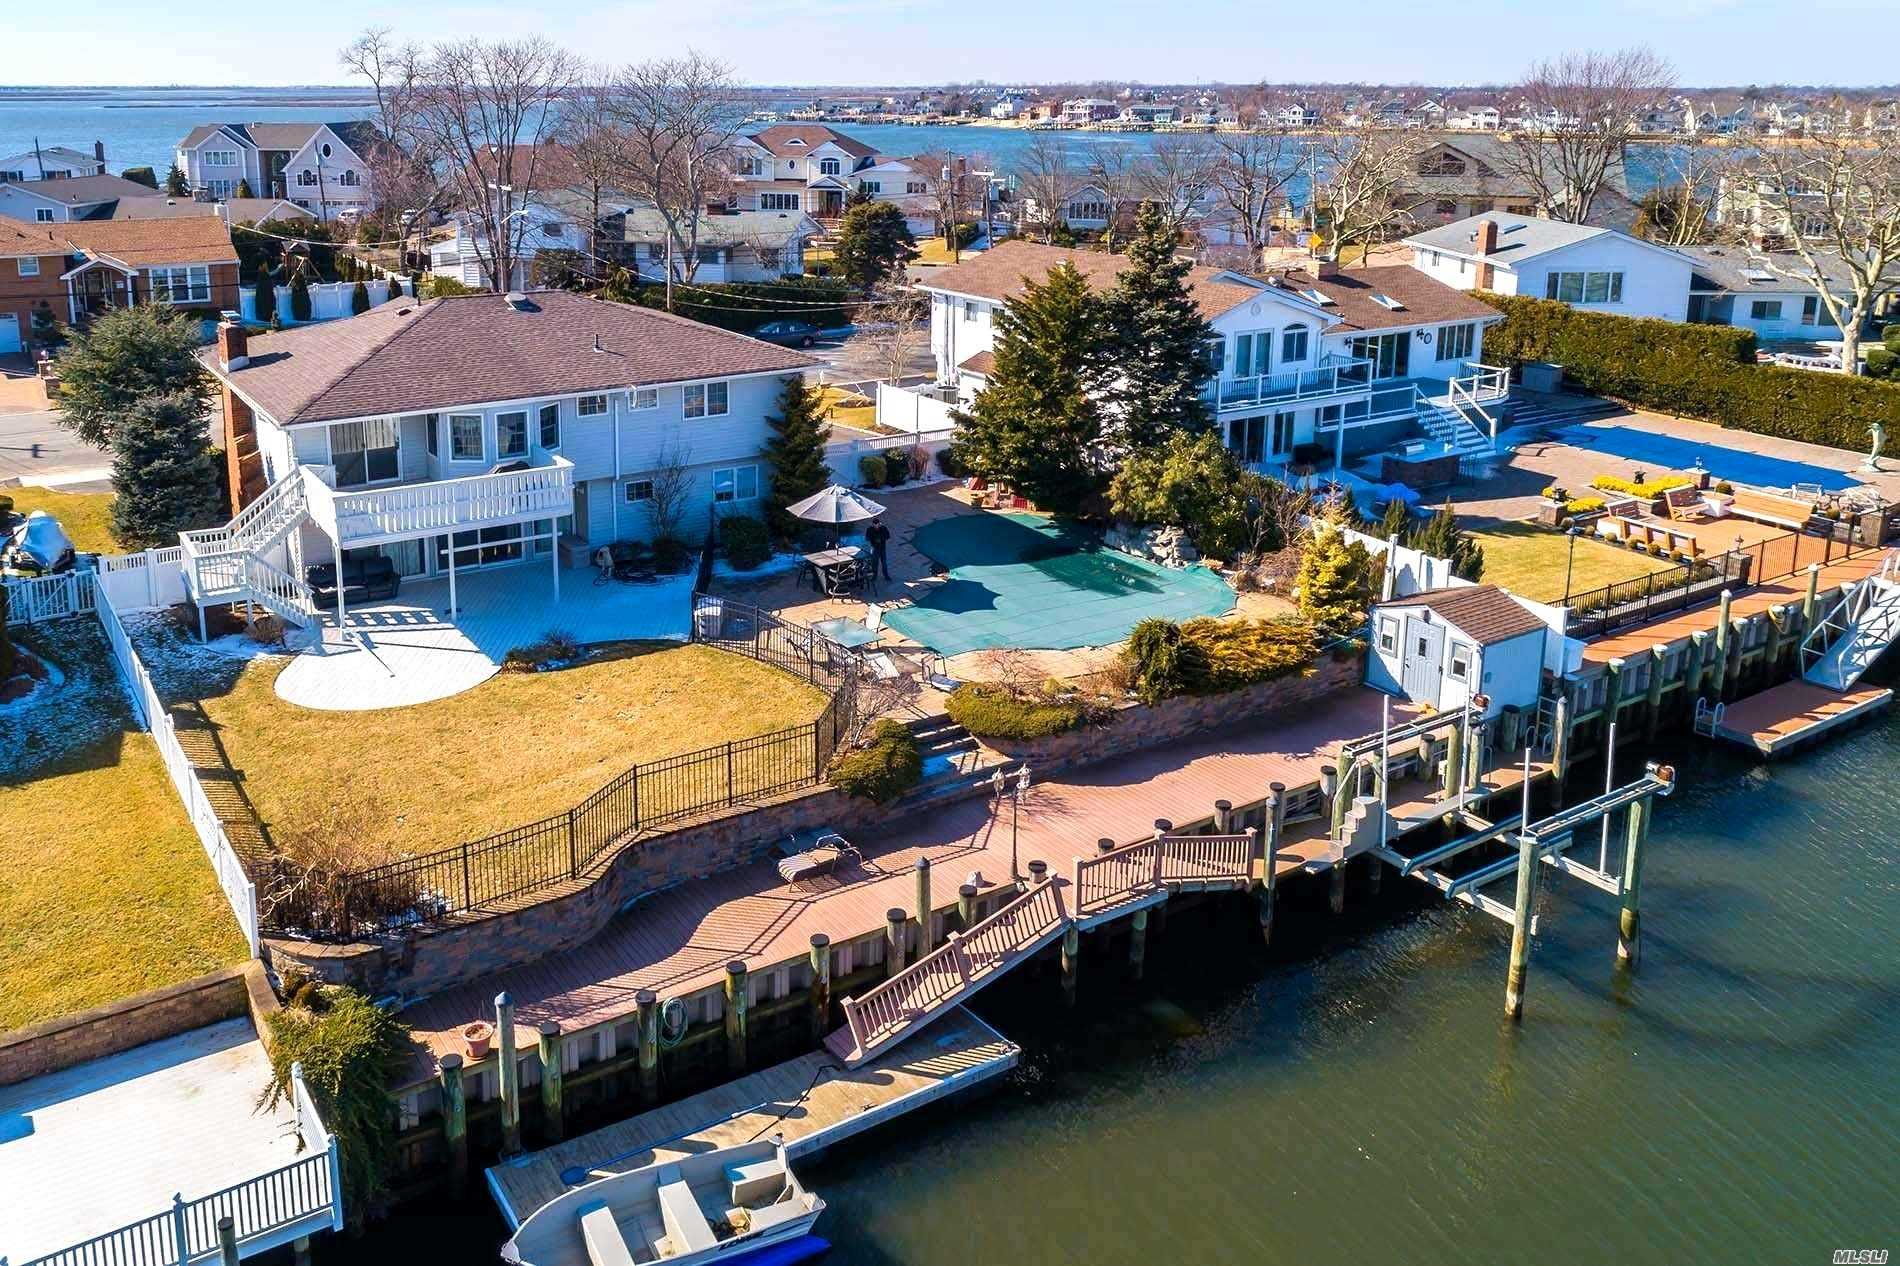 A Picture Perfect Setting For This Spacious Waterfront Home In The Harbour Green Estates Community W/ A Resort Backyard Setting W/Ig Heated Vinyl Pool W/Waterfall, Navy Corrugated Bulkhead, Boat Lift, Ramp & Dock For Wave Runners & Literally 2Nds To The Bay..A Boater Dream! This Home Boasts A Great Open Floor Plan, Central Air, Hardwood Floors On 2nd Level, Wood Burning Fireplace In The Fam Room, Sep Laundry Area, Newer Roof, Fenced In Backyard! Present Flood Insurance Is $532./Year! Wow!